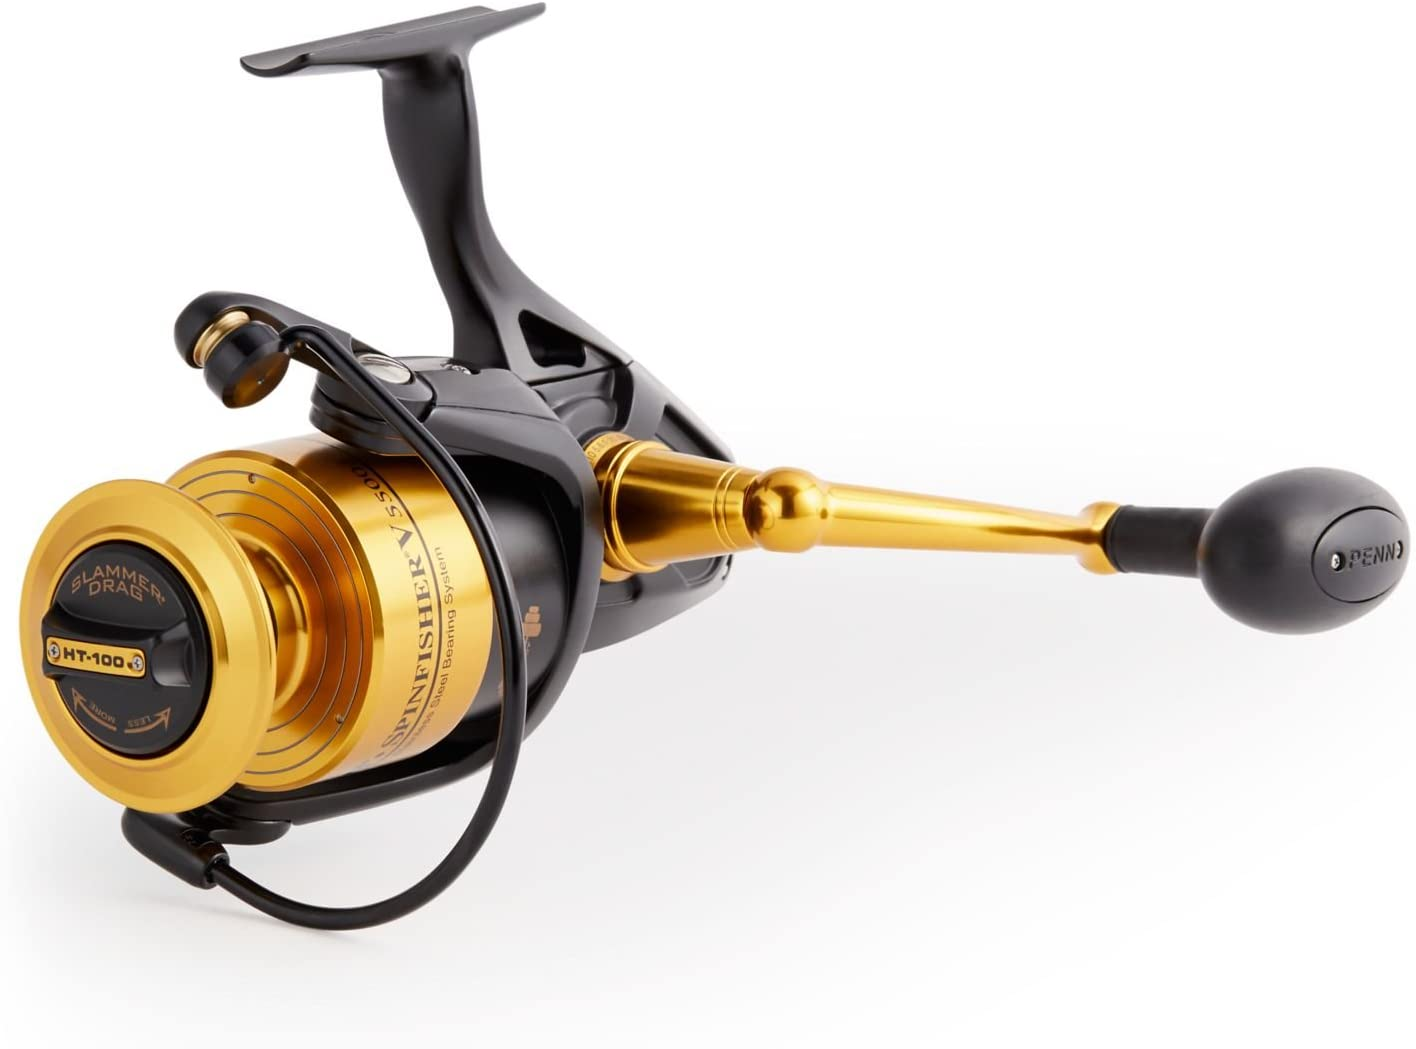 Penn Spinfisher V Ssv5500 Carrete Spinning: Amazon.es: Deportes y ...